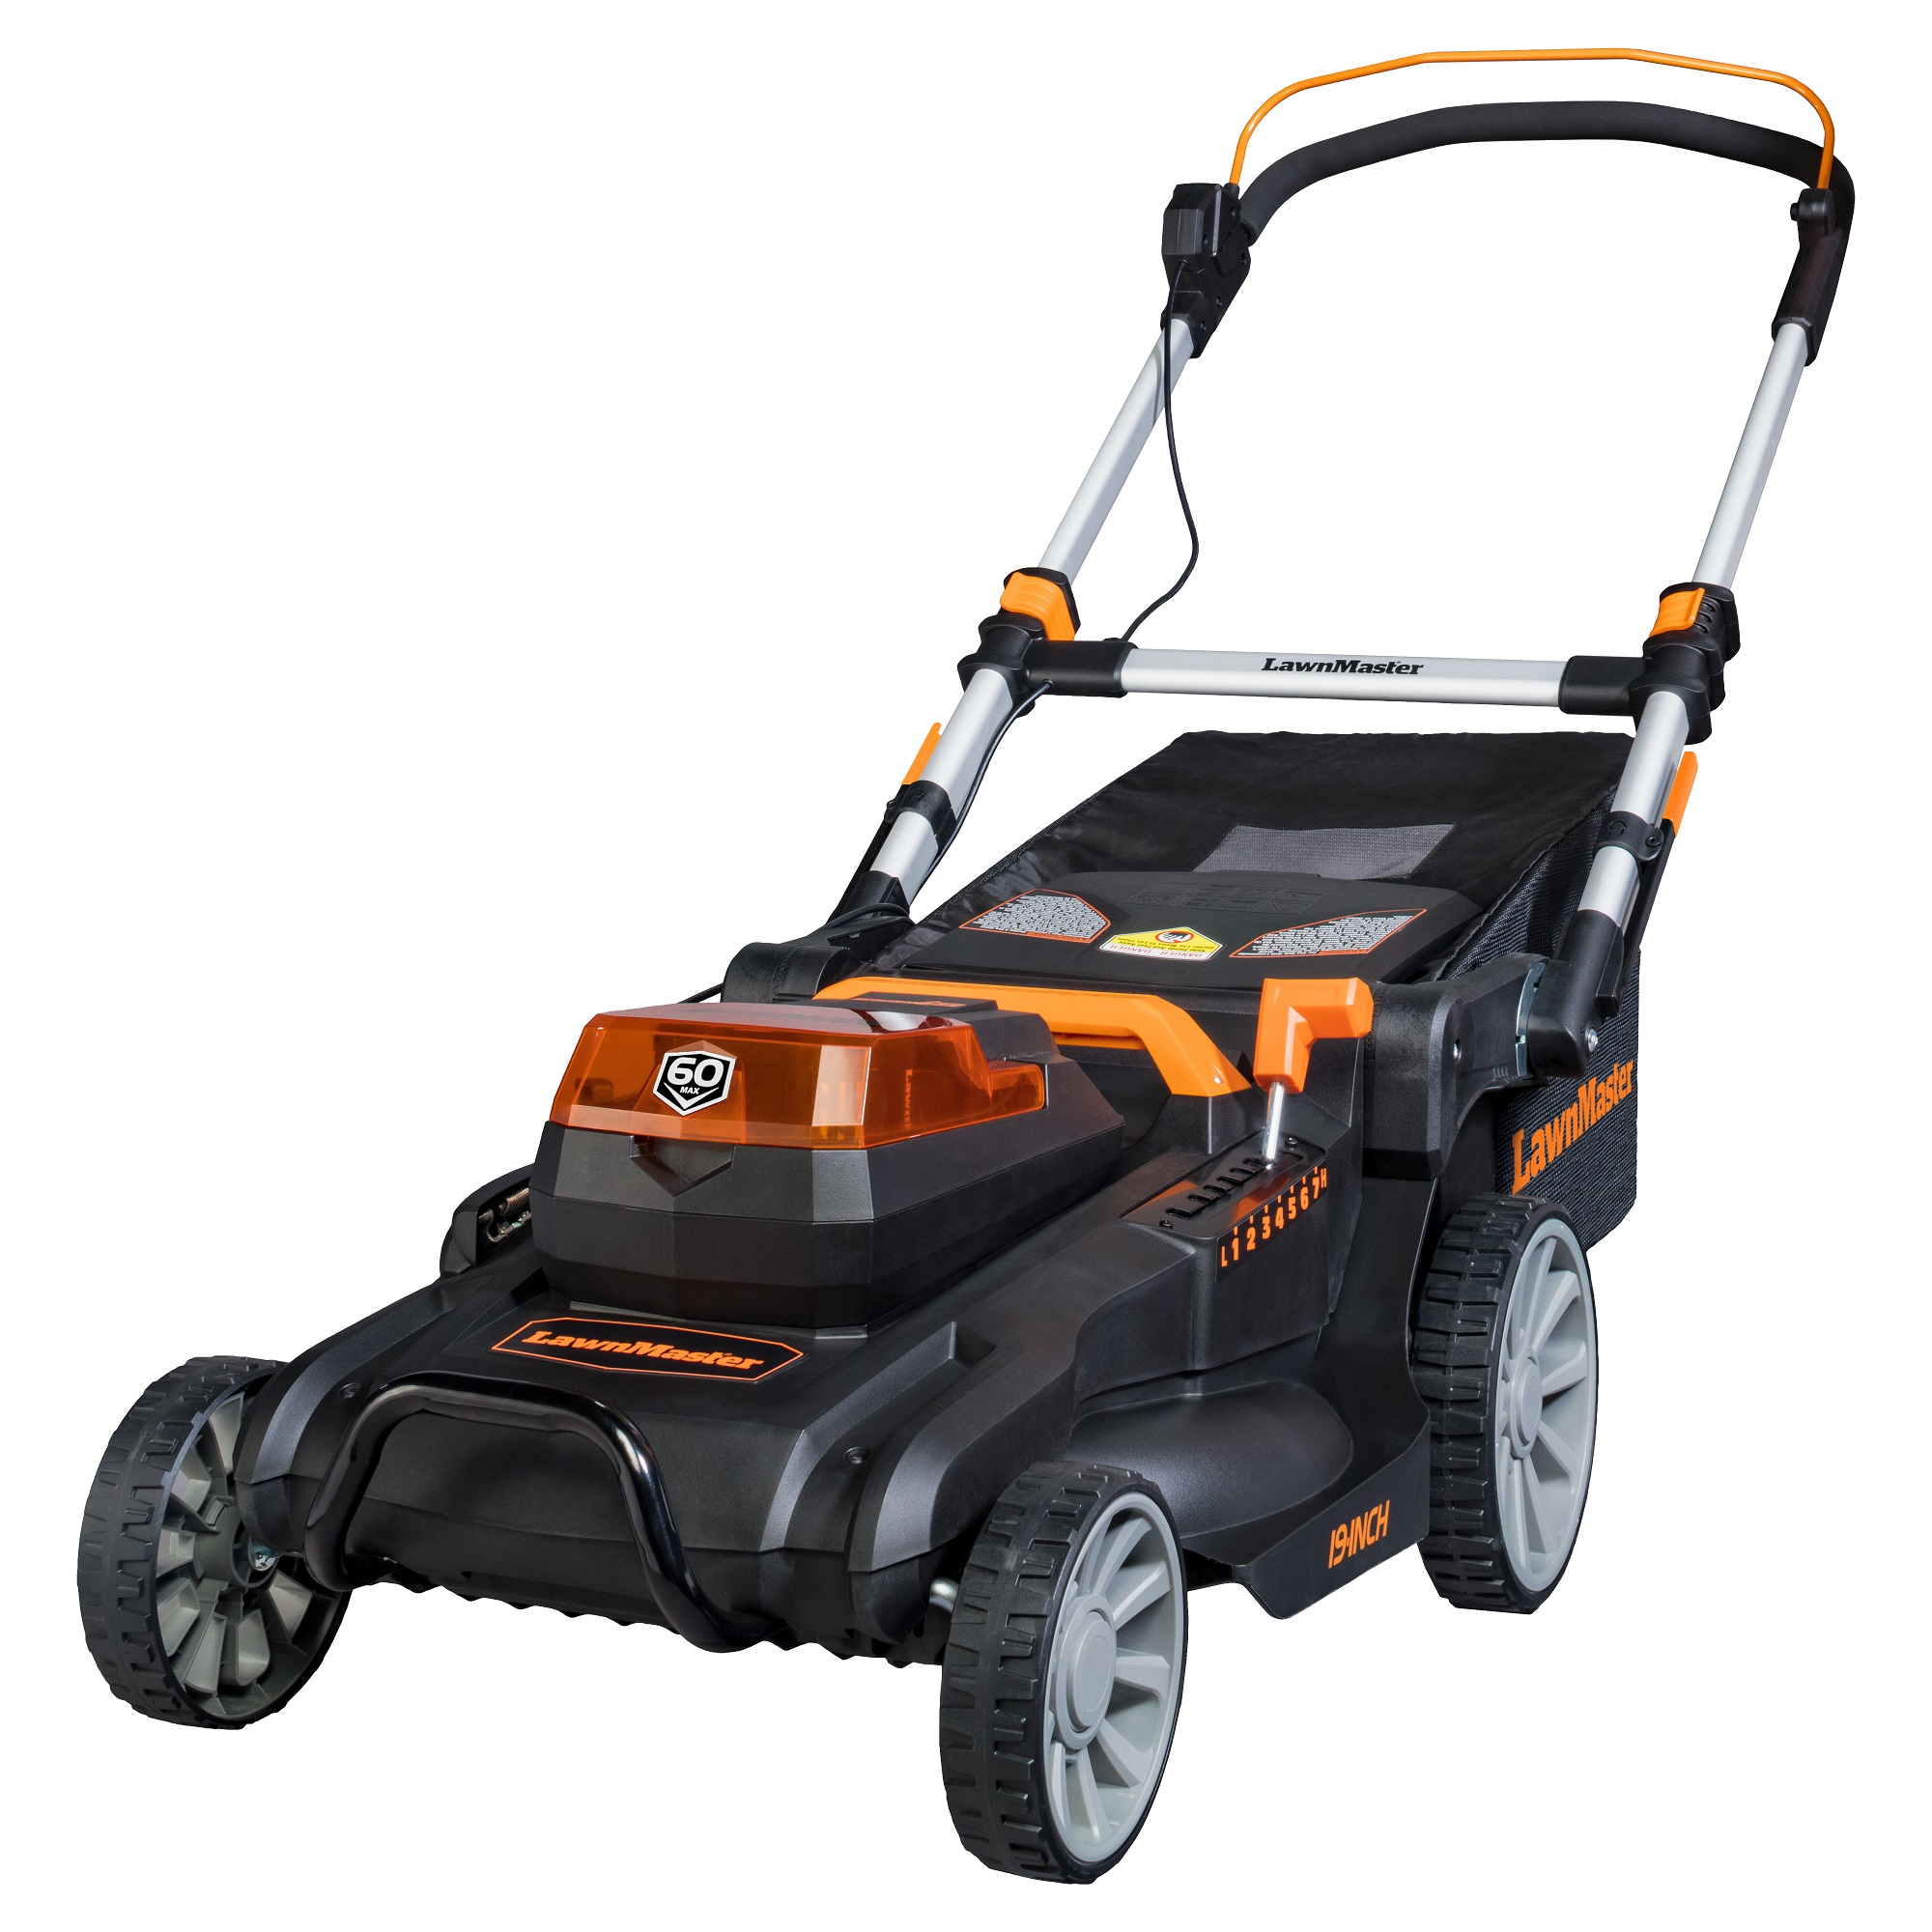 """LawnMaster 60V 19"""" Cordless Lawn Mower, CLMFT6018A by Cleva North America, Inc."""